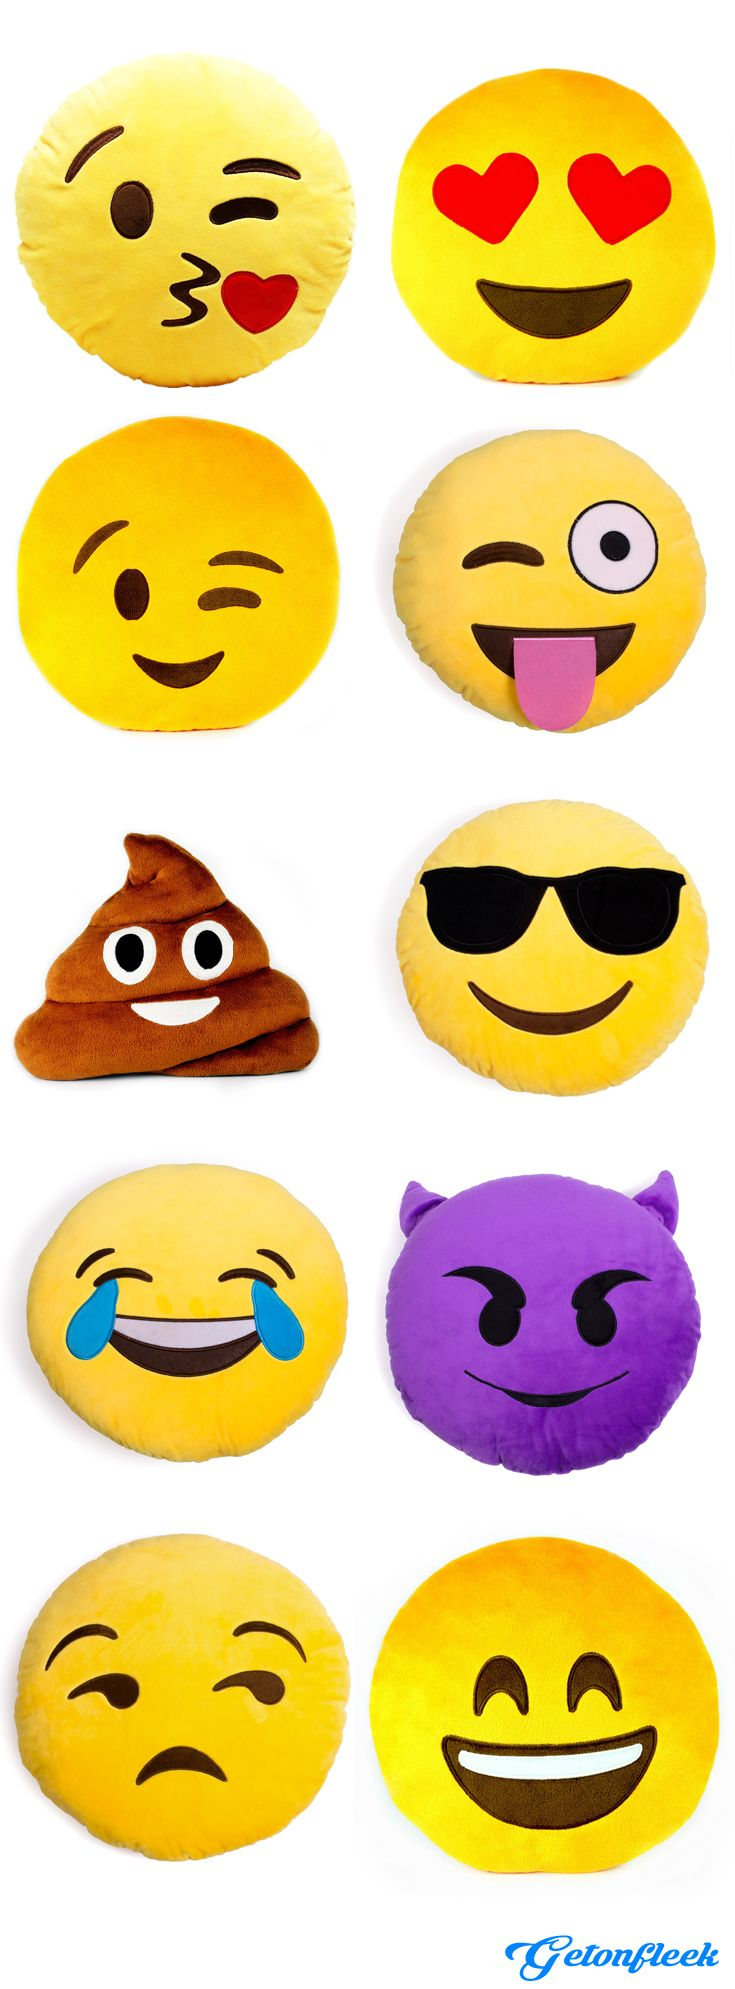 Emoji pillows check out the entire collection tonfleek